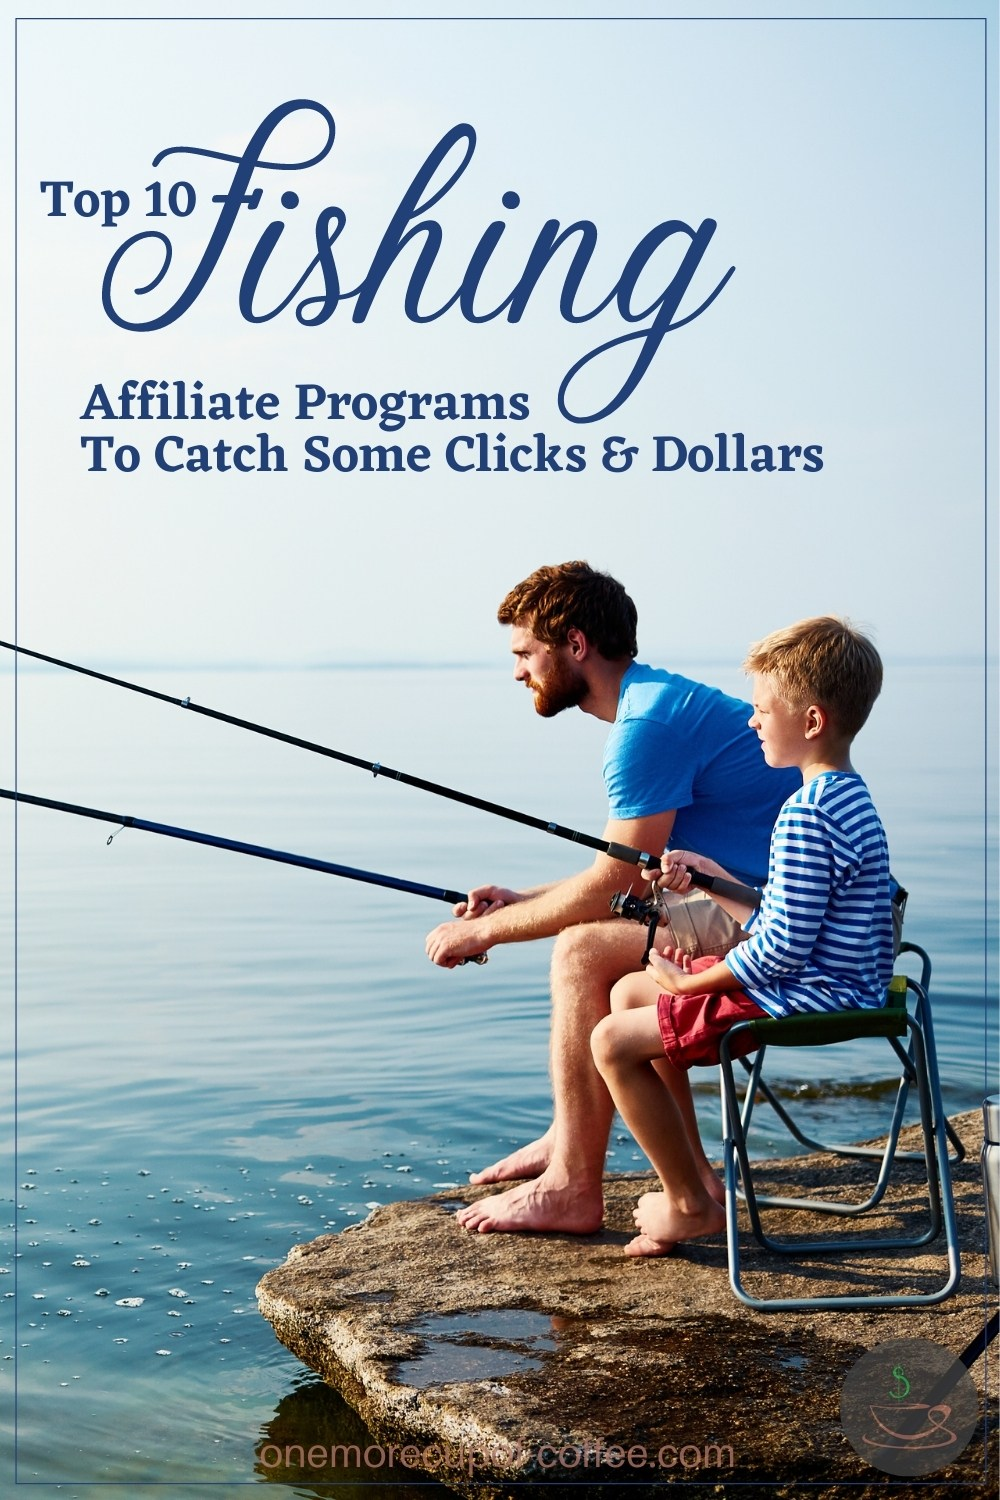 """barefooted father and son on a rock ledge fishing, with text overlay """"Top 10 Fishing Affiliate Programs To Catch Some Clicks & Dollars"""""""